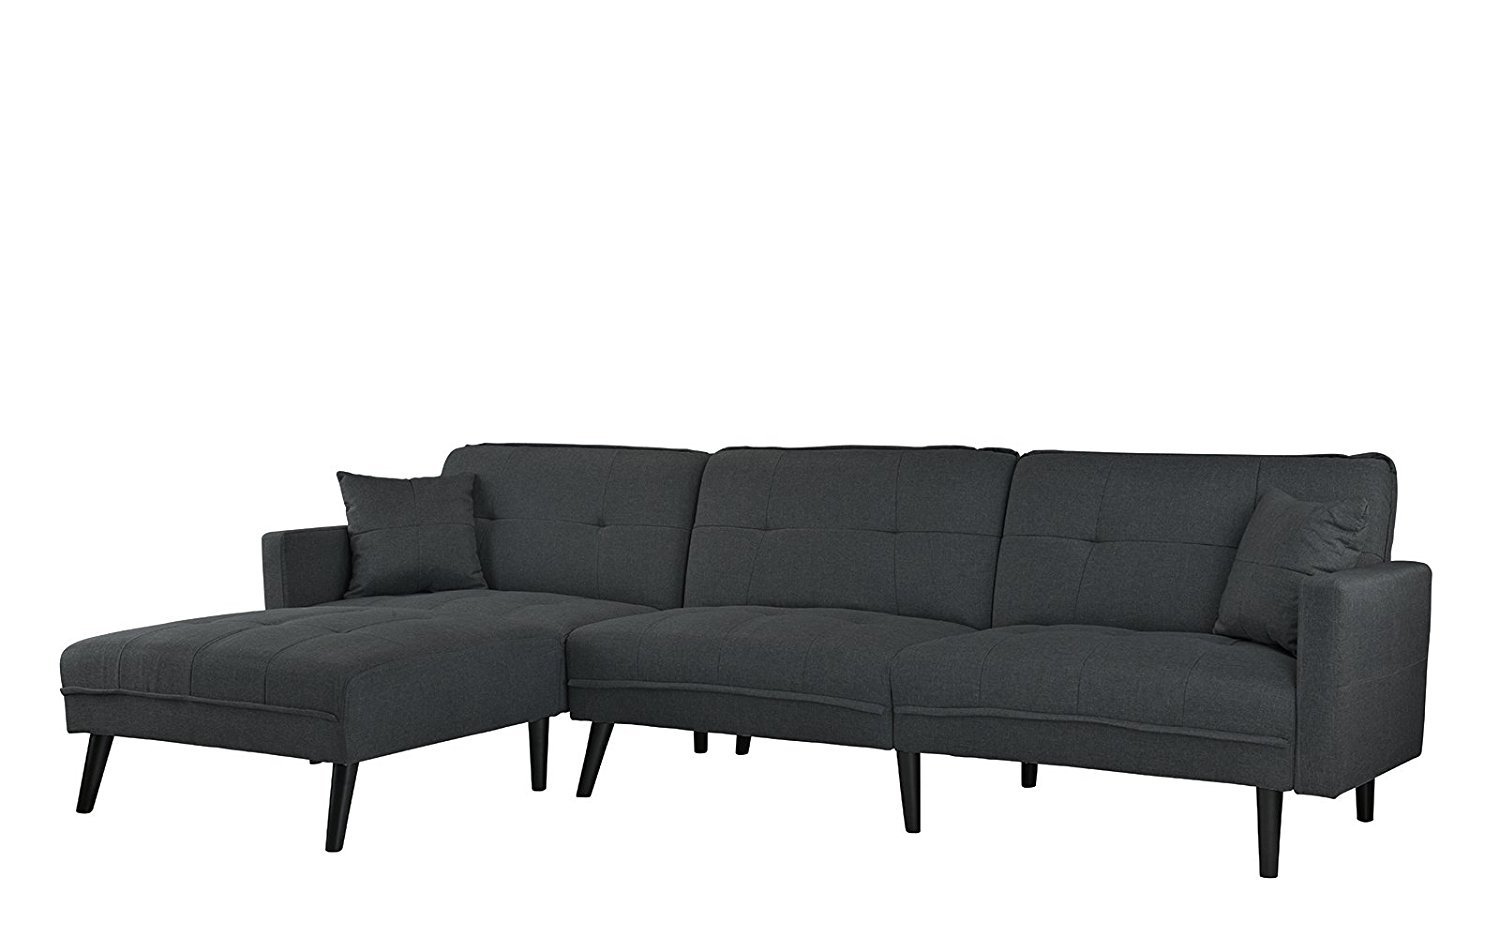 Details about Dark Grey Mid Century Modern Sofa Sleeper Futon Sofa, L Shape  Sectional Couch